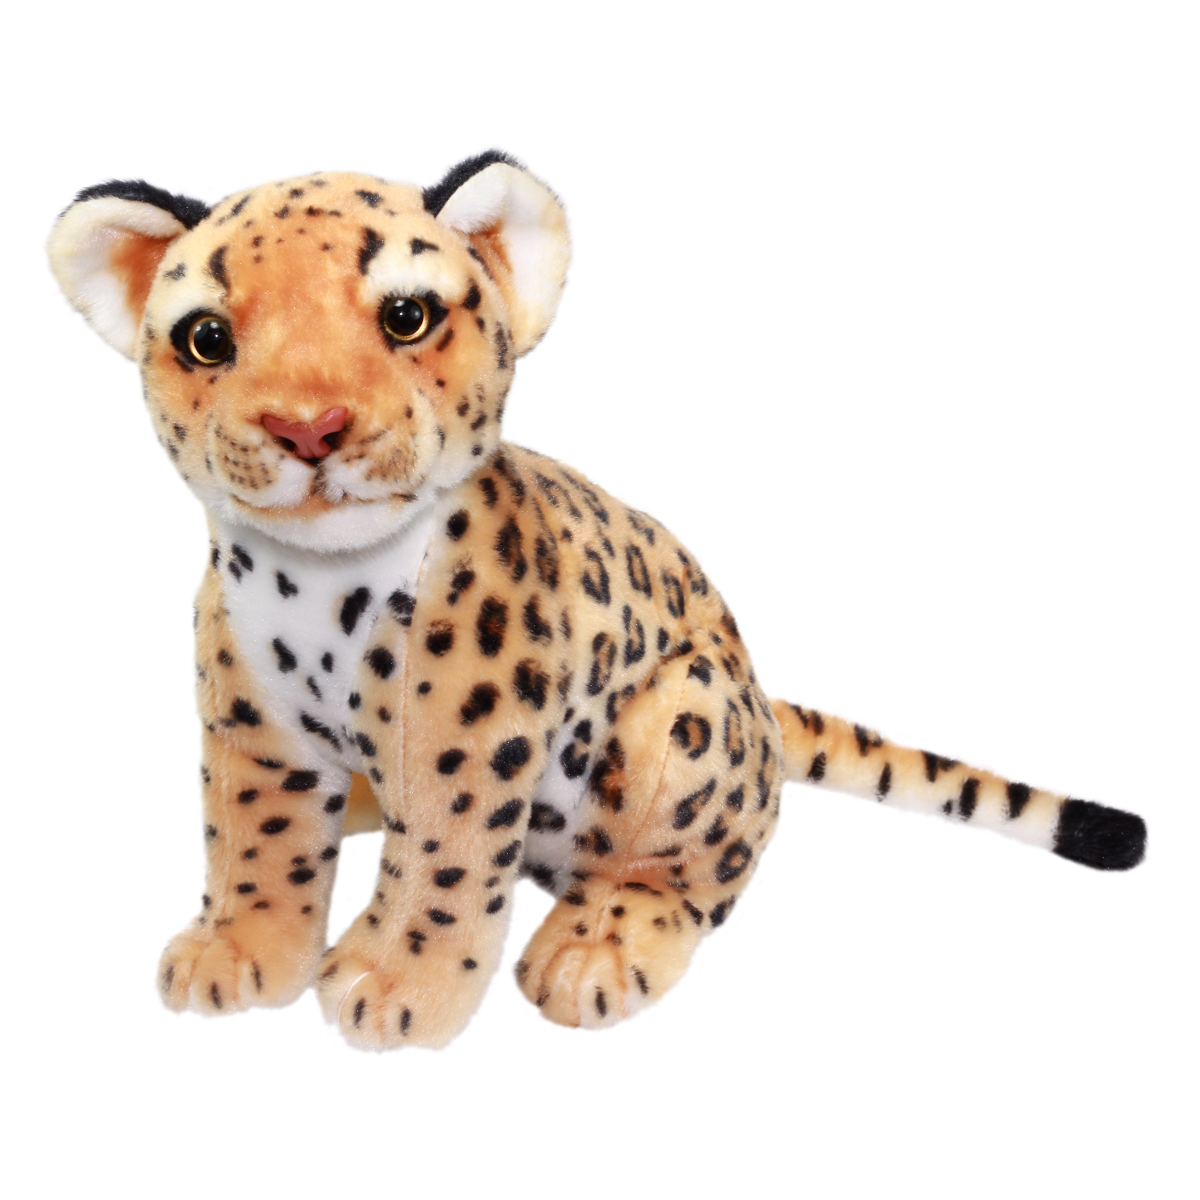 Real Animal Plush Collection Stuffed Animal Toy Leopard 10 Inches